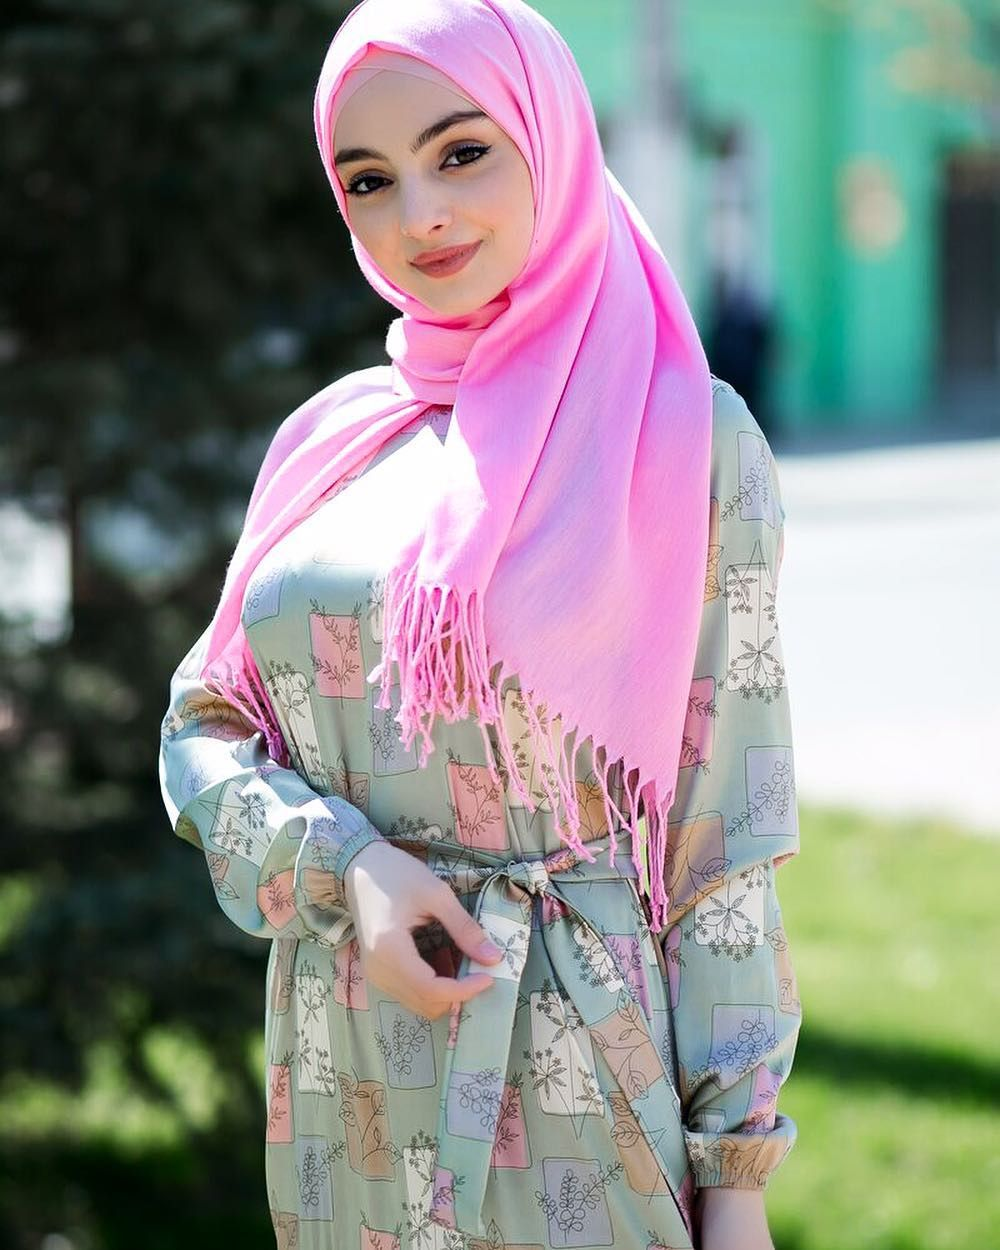 shaw single muslim girls Single muslim women the world wide web was a tool to meet new people in spite of the barrier of distance as you know that millions of single women seeking men or vice versa, looking ladies guys must choose the appropriate online dating service.